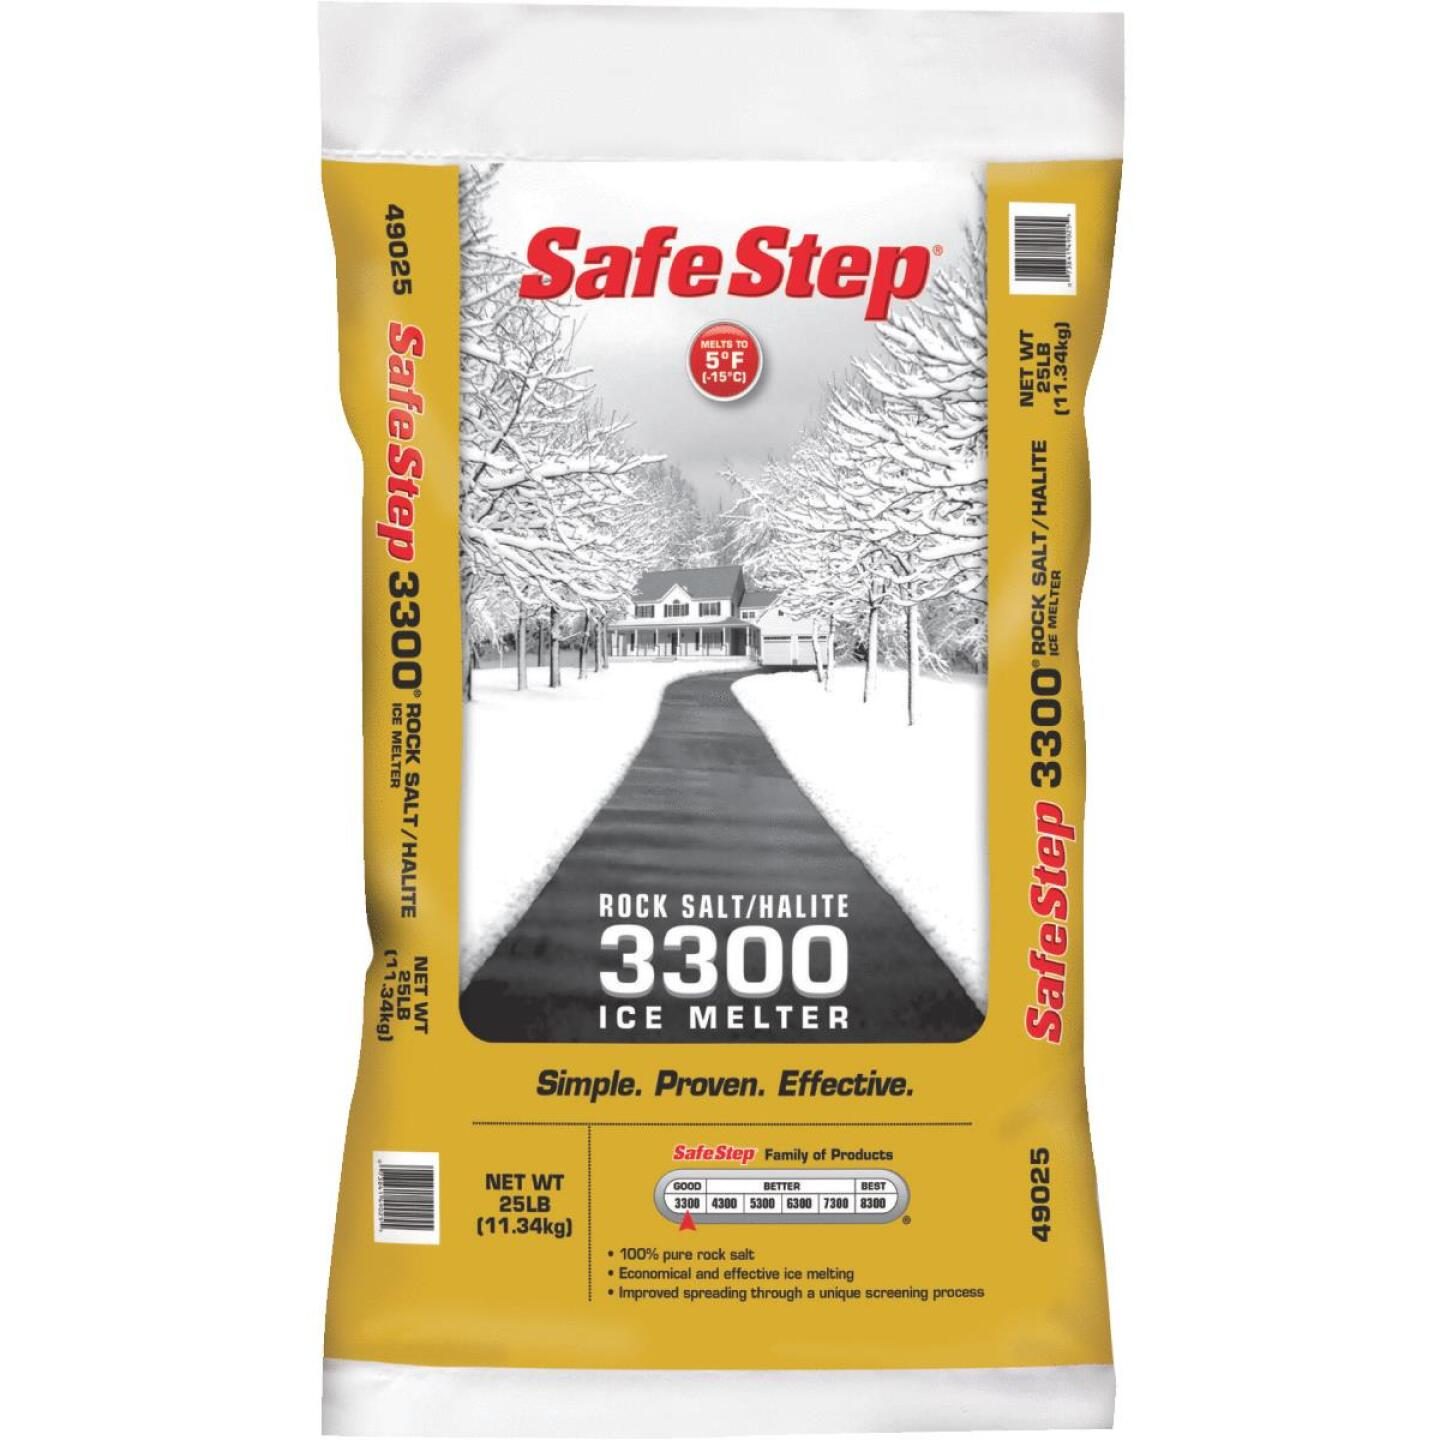 Safe Step 3300 25 Lb. Rock Salt/Halite Ice Melt Large Pellets Image 1